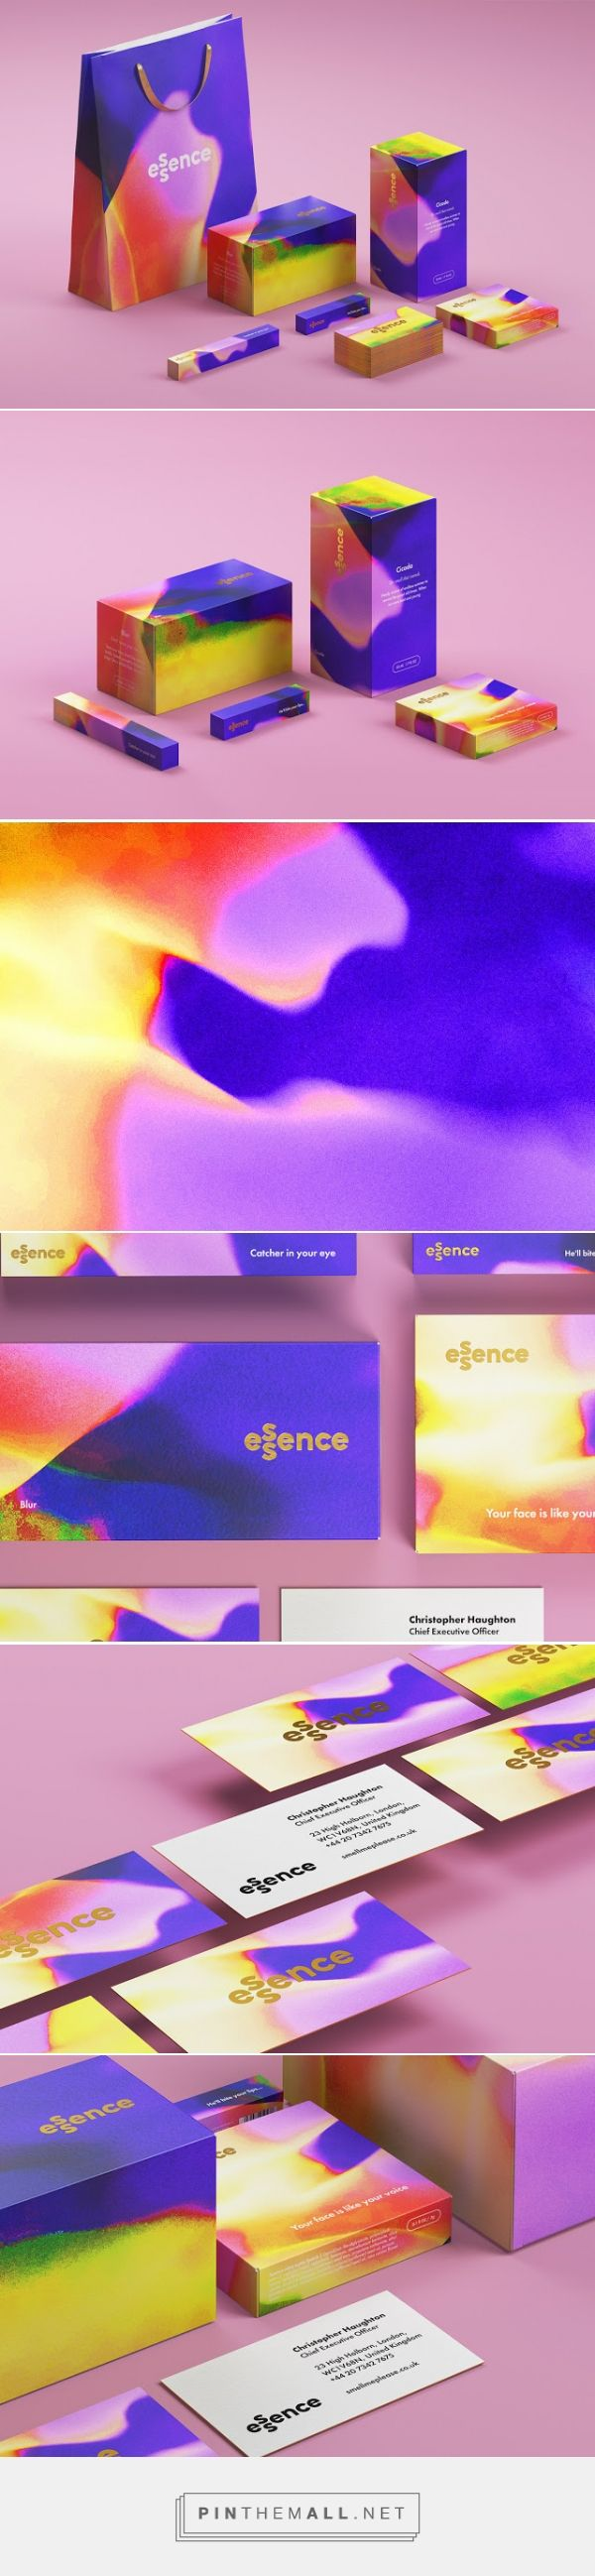 Essence #cosmetic #perfume #packaging designed by The Bold Studio - http://www.packagingoftheworld.com/2015/07/essence.html